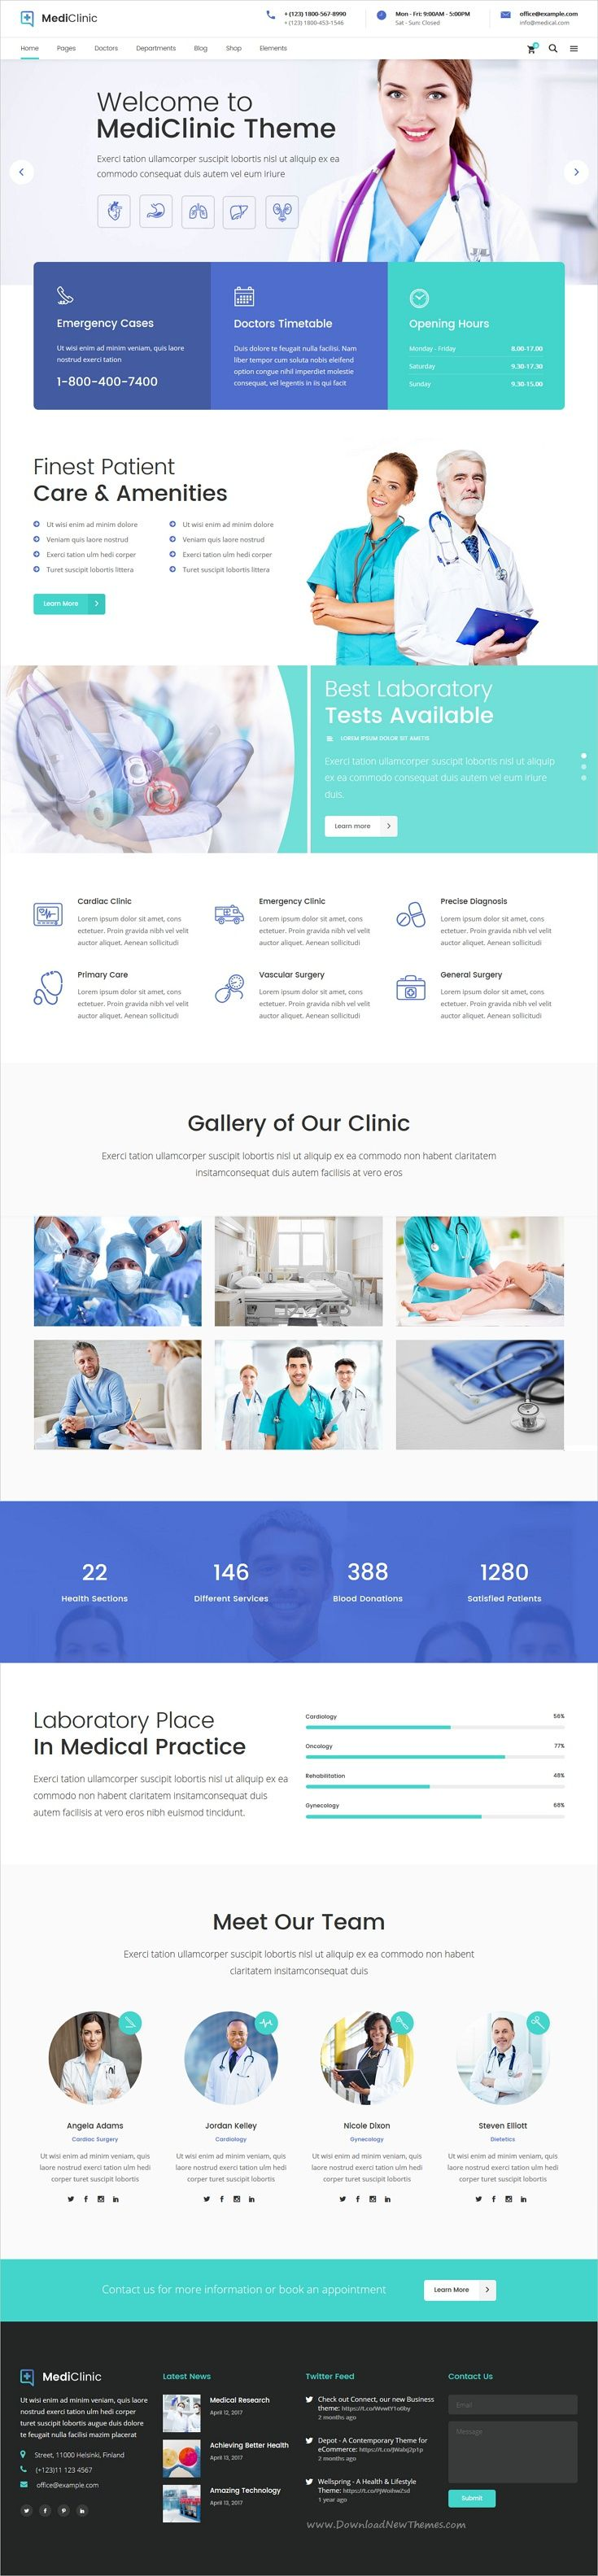 Mediclinic Is Clean And Modern Design 12in1 Responsive Wordpress